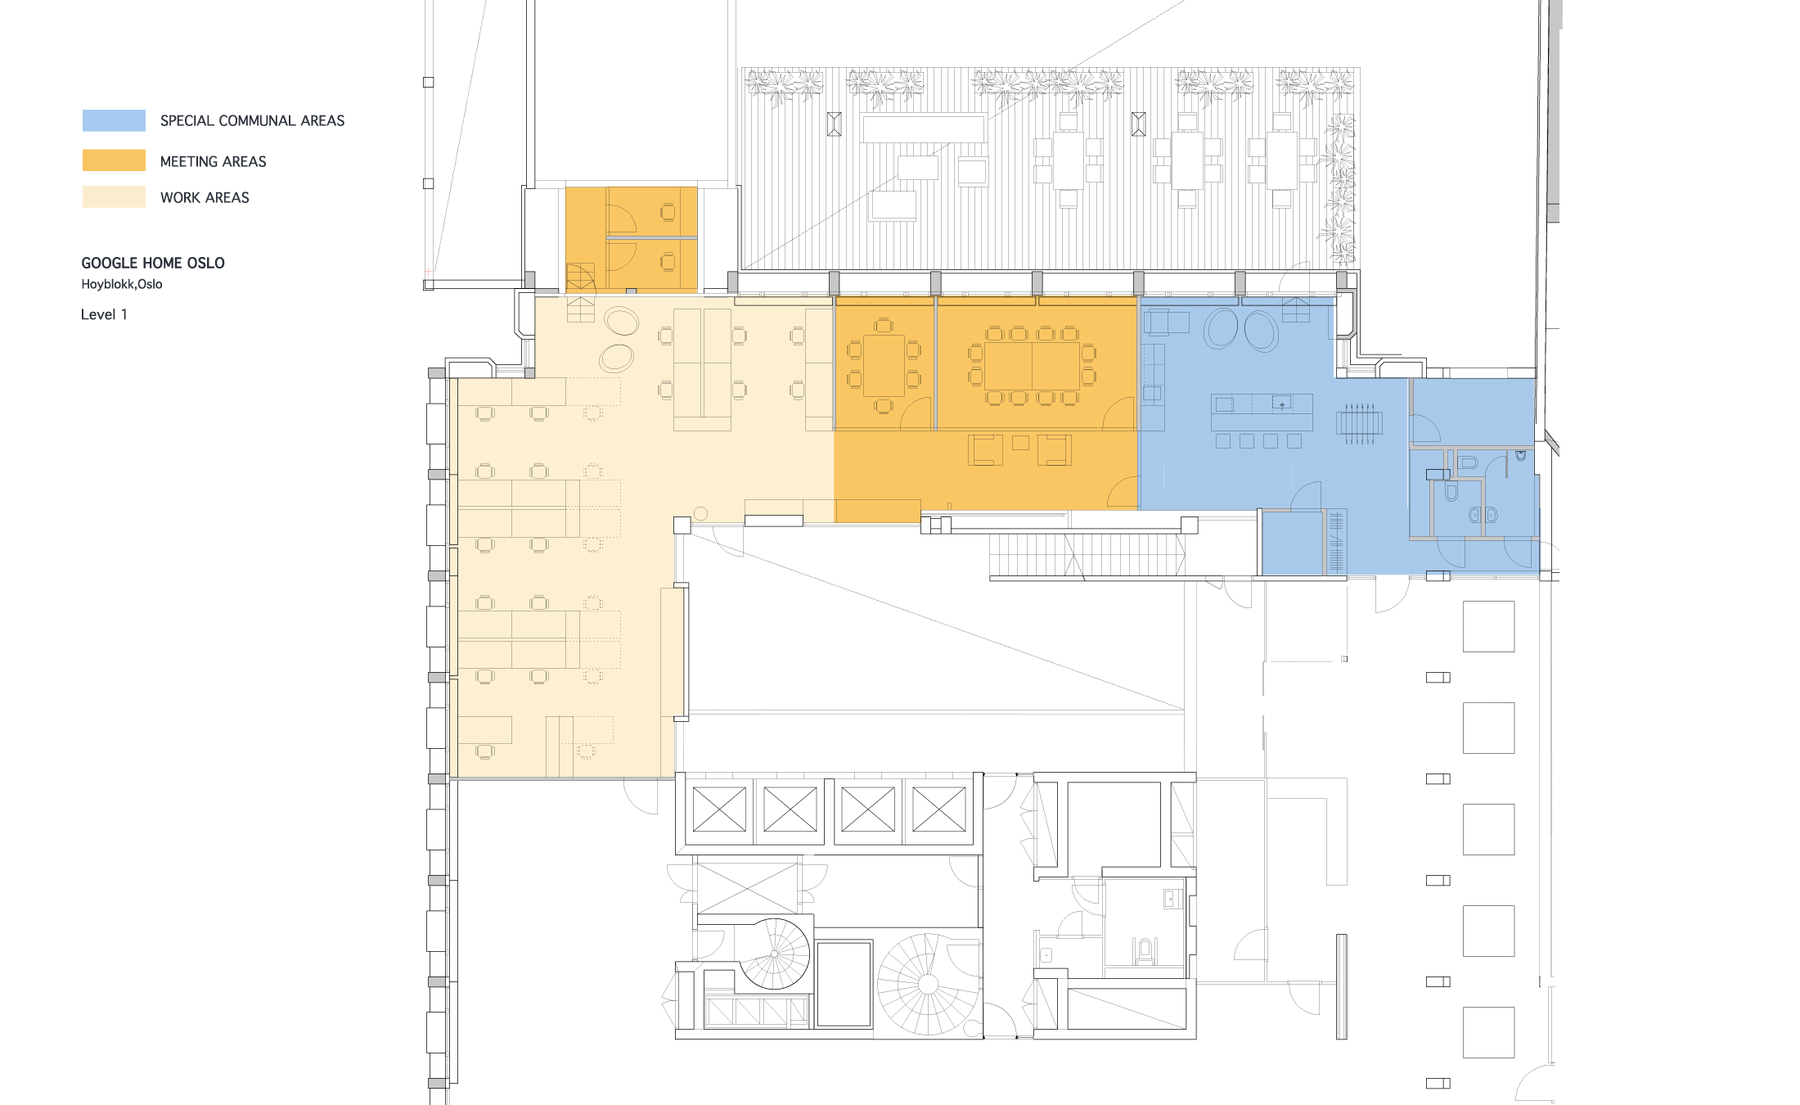 Google Headquarters Floor Plan | Floor plan. Level 1 ...